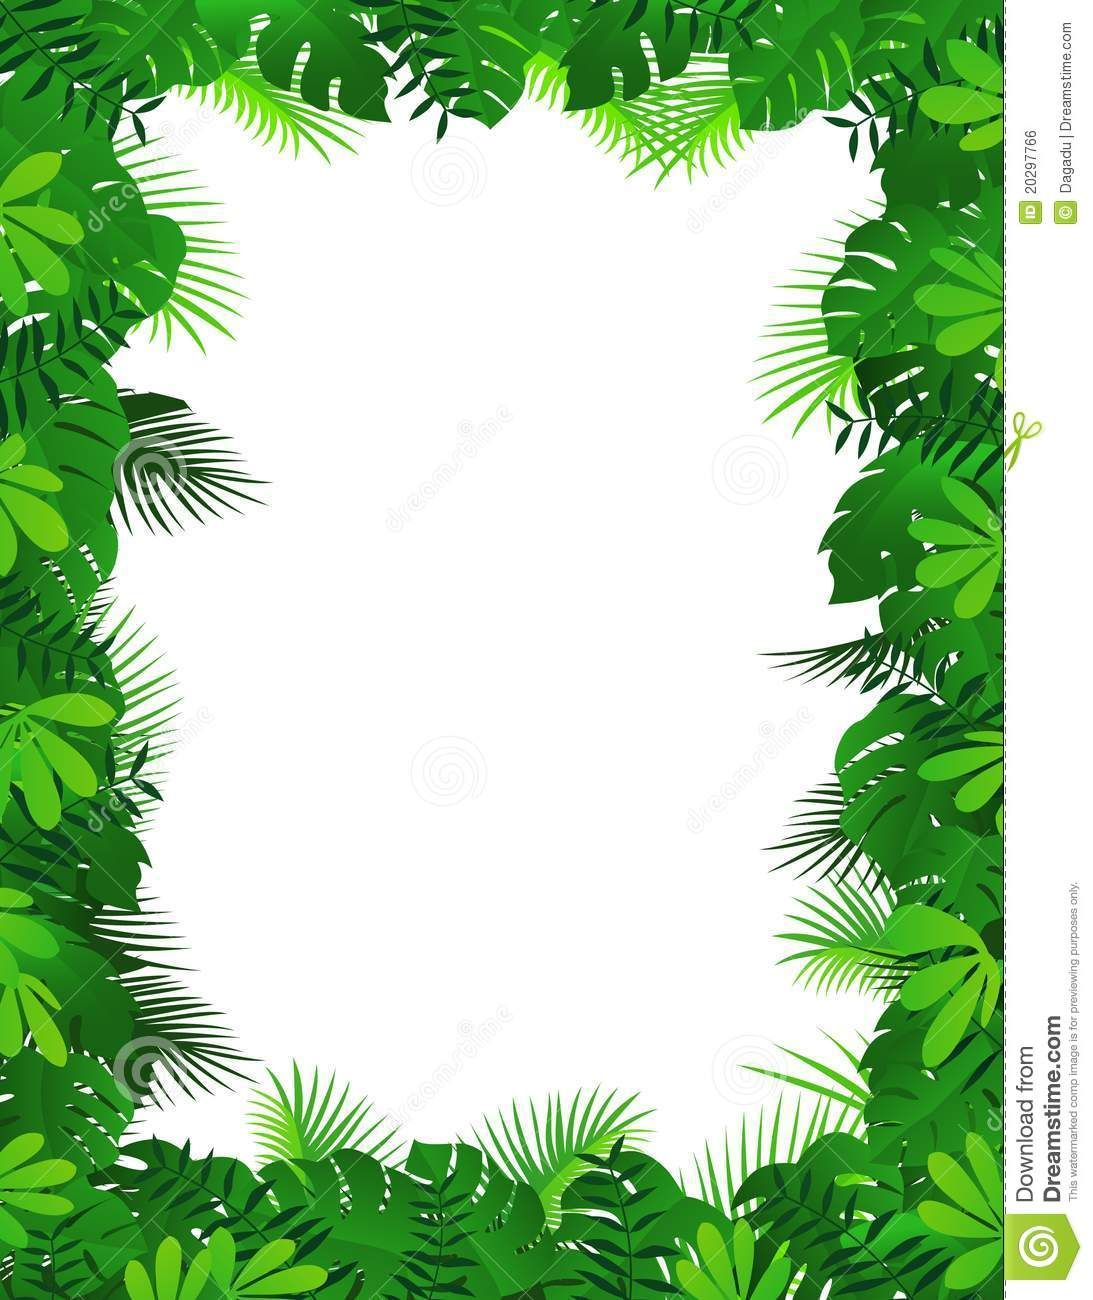 Jungle clipart nature frame. Forest download from over